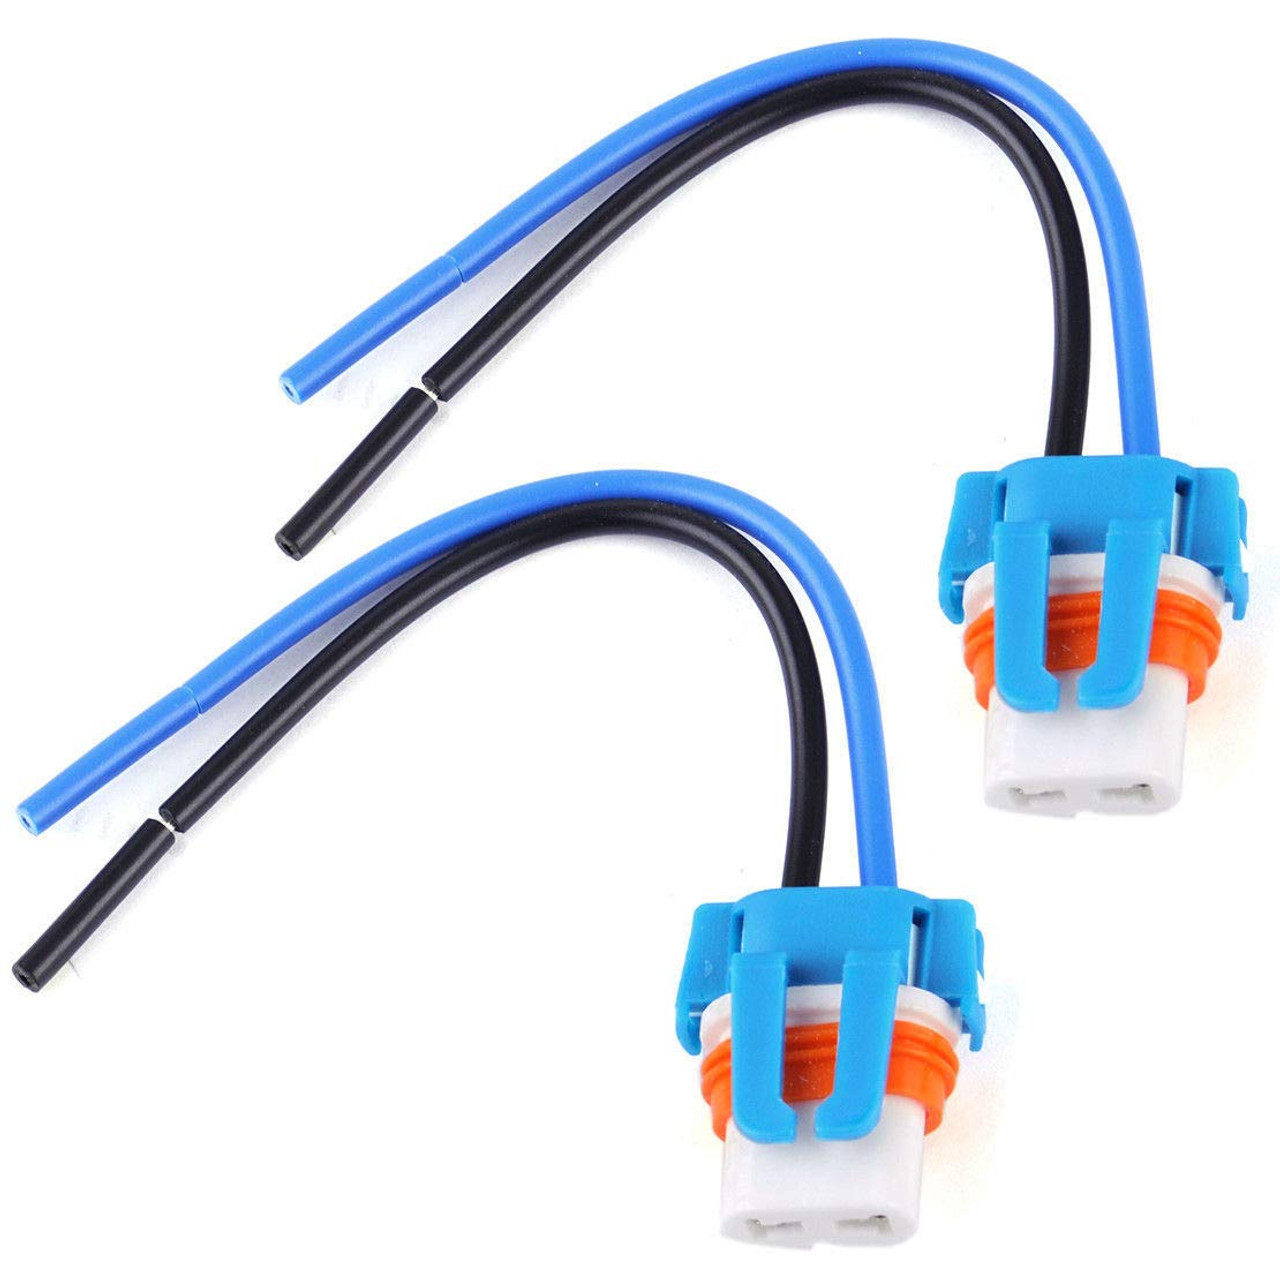 2 9006 hb4 female socket wire harness bulb holder adapter plug ceramic connector [ 1110 x 1110 Pixel ]